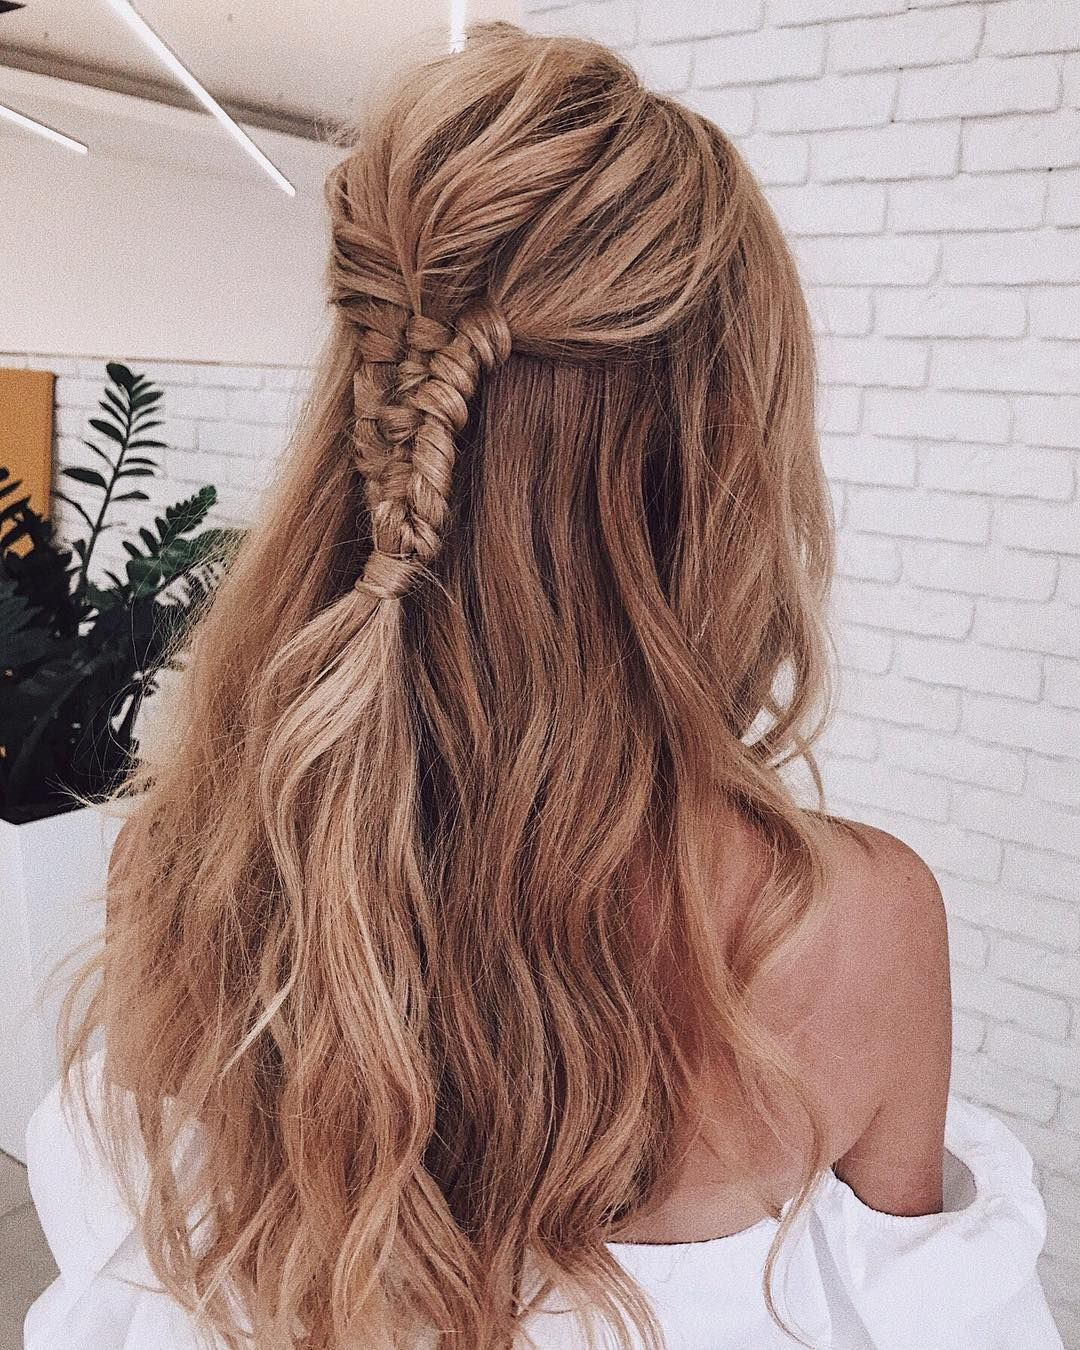 "47 gorgeous braid hairstyle inspiration , braids ,hairstyles ,braided ponytails , textured braids <a class=""pintag"" href=""/explore/hairstyle/"" title=""#hairstyle explore Pinterest"">#hairstyle</a> <a class=""pintag"" href=""/explore/hair/"" title=""#hair explore Pinterest"">#hair</a> <a class=""pintag"" href=""/explore/braids/"" title=""#braids explore Pinterest"">#braids</a> <a class=""pintag"" href=""/explore/ponytails/"" title=""#ponytails explore Pinterest"">#ponytails</a><p><a href=""http://www.homeinteriordesign.org/2018/02/short-guide-to-interior-decoration.html"">Short guide to interior decoration</a></p>"